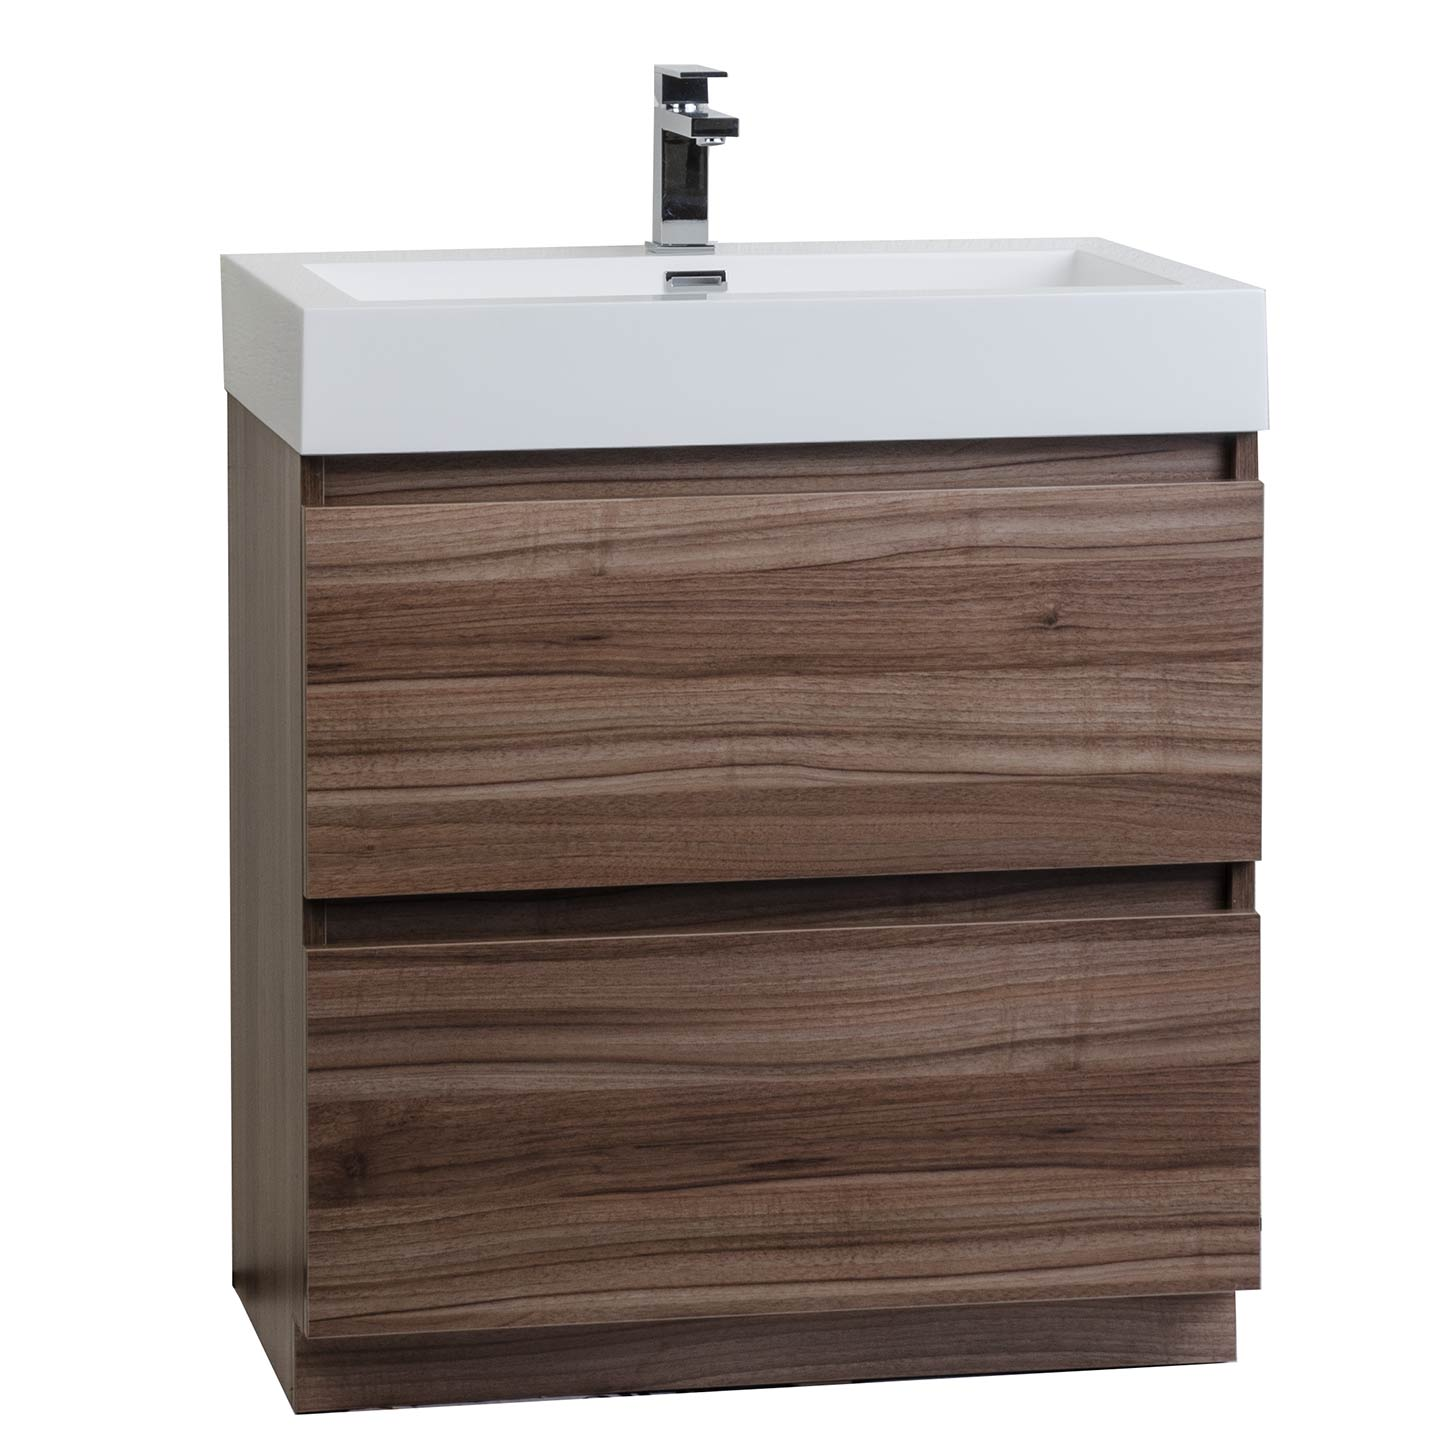 29 5 Contemporary Bathroom Vanity Set In Walnut Optional